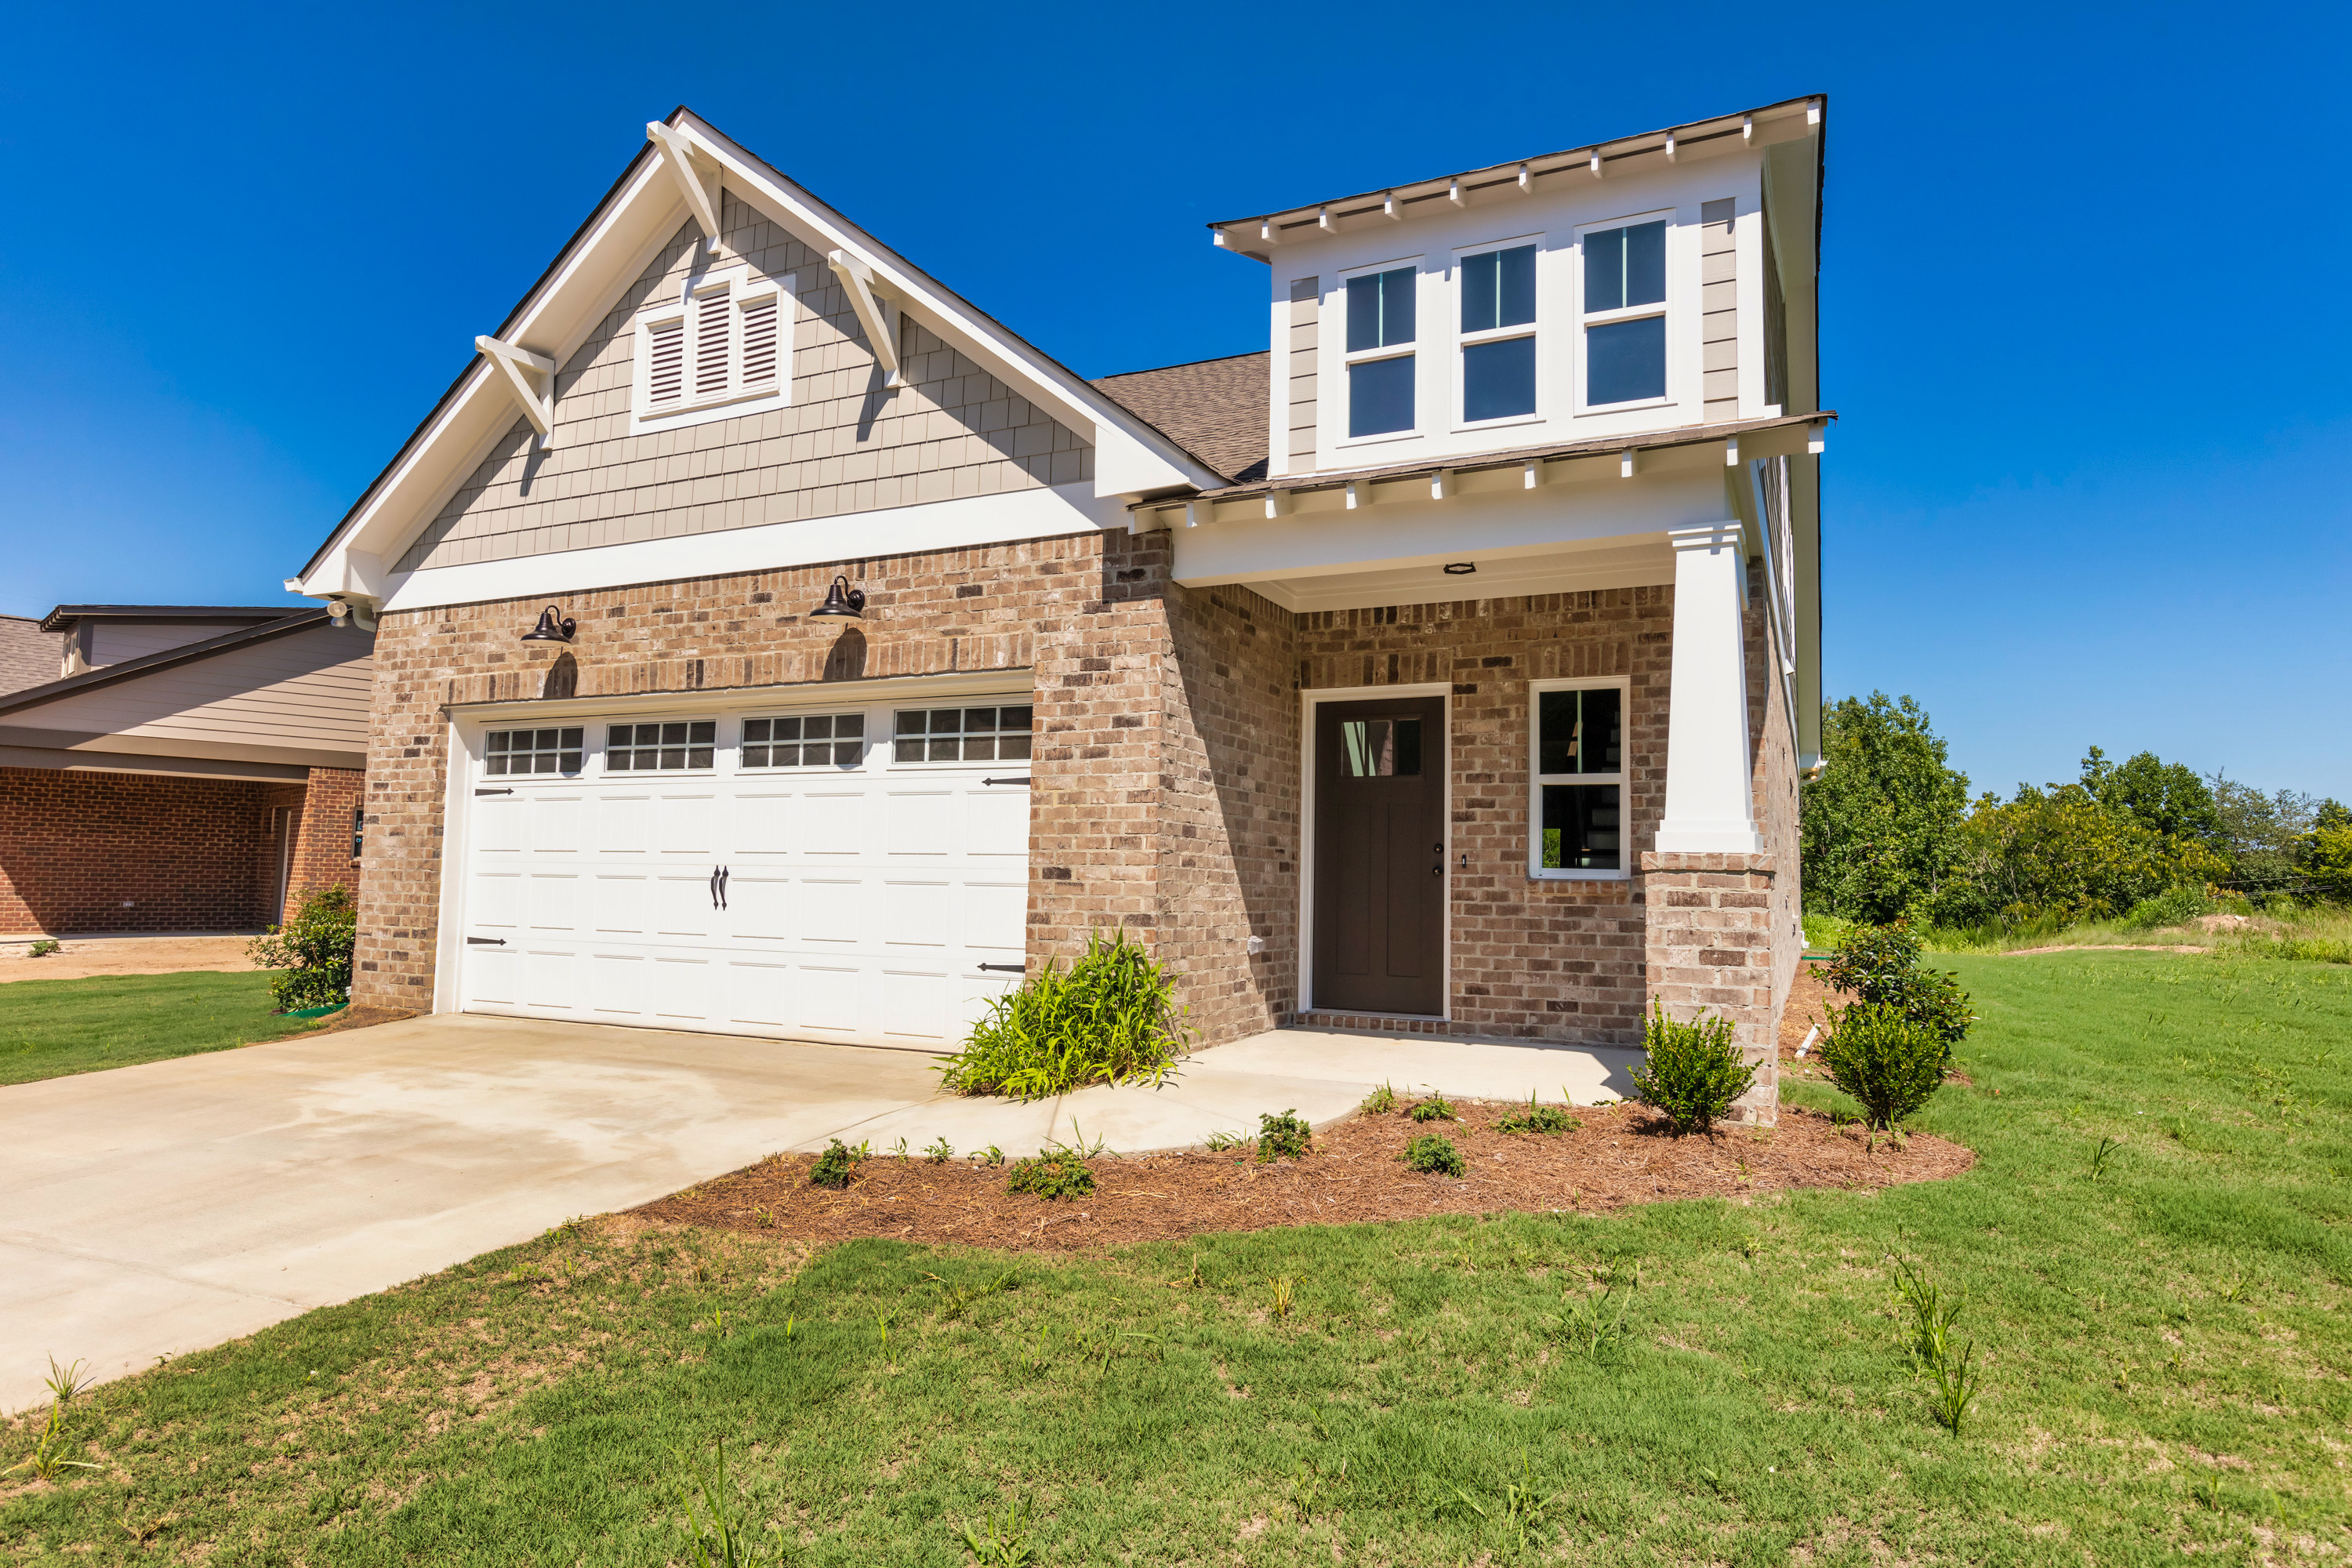 Incentives in Woodridge for buyers and agentsd